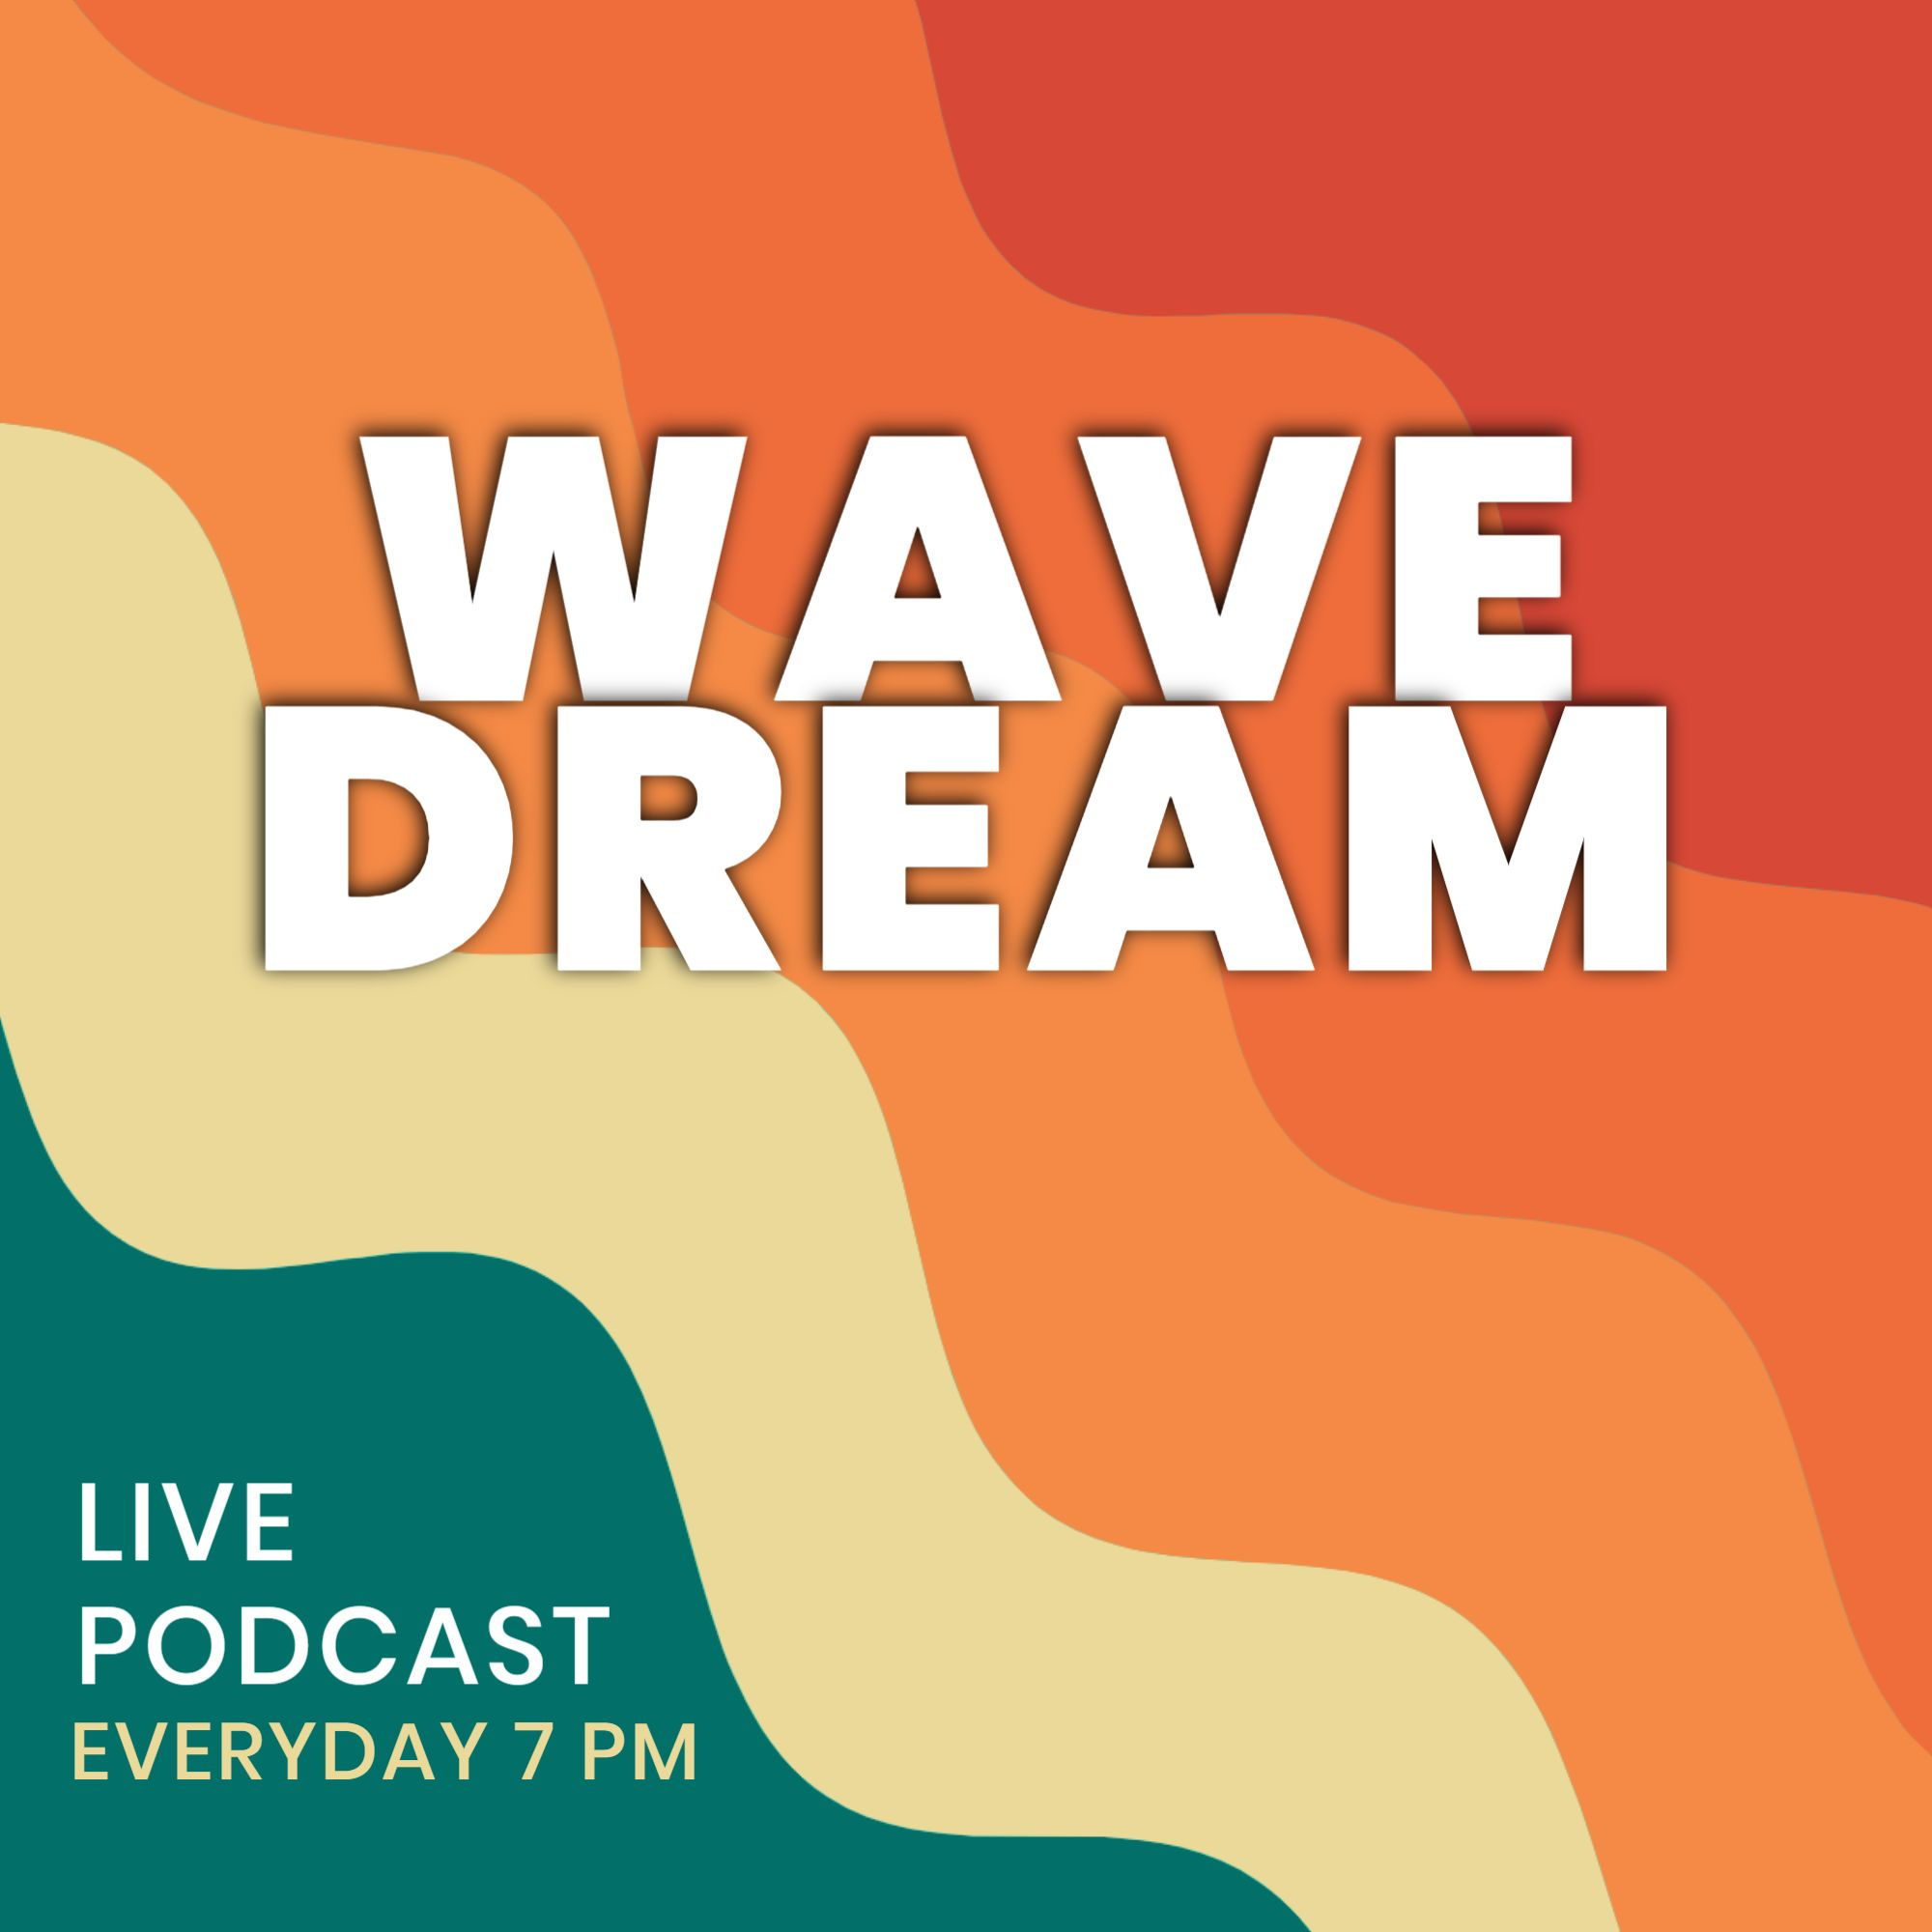 Wave Dream Podcast Cover Template